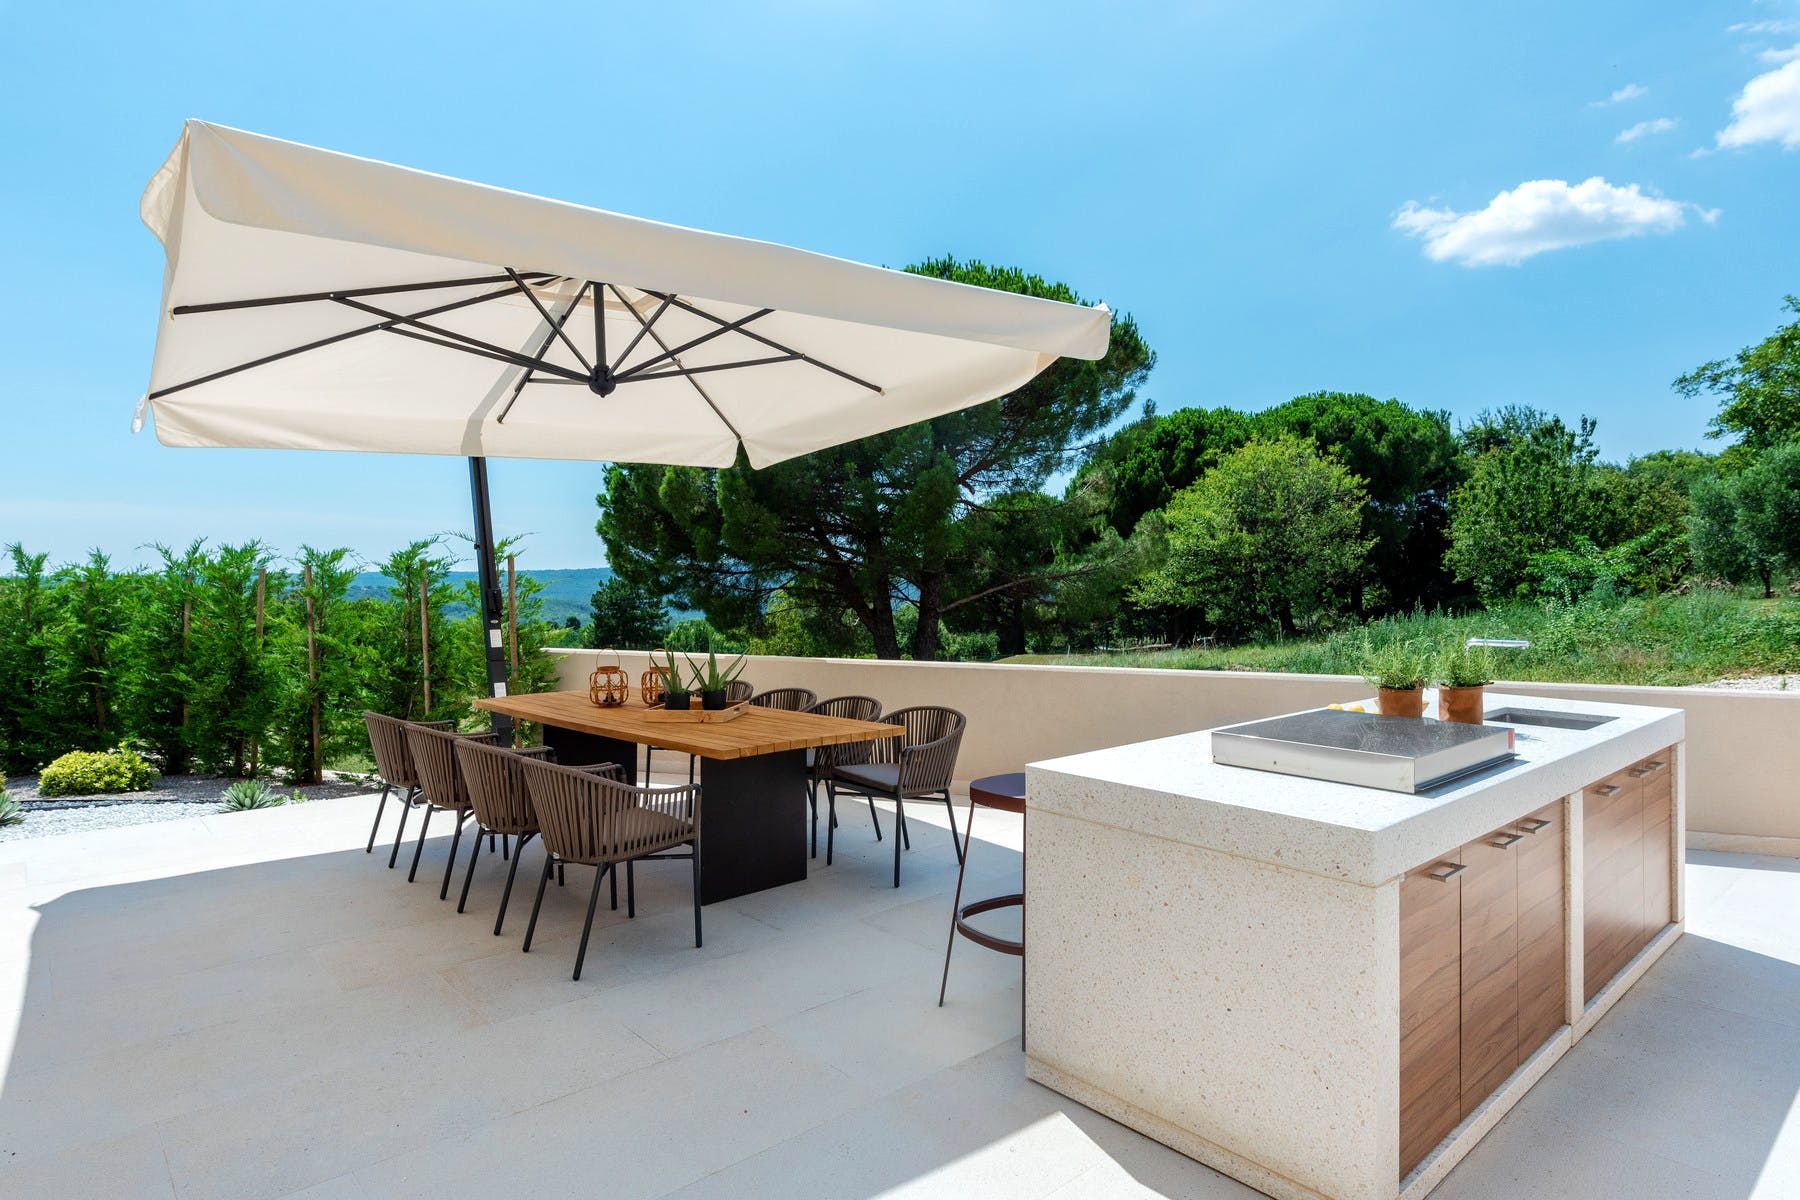 Spacious terrace with dining area and summer kitchen